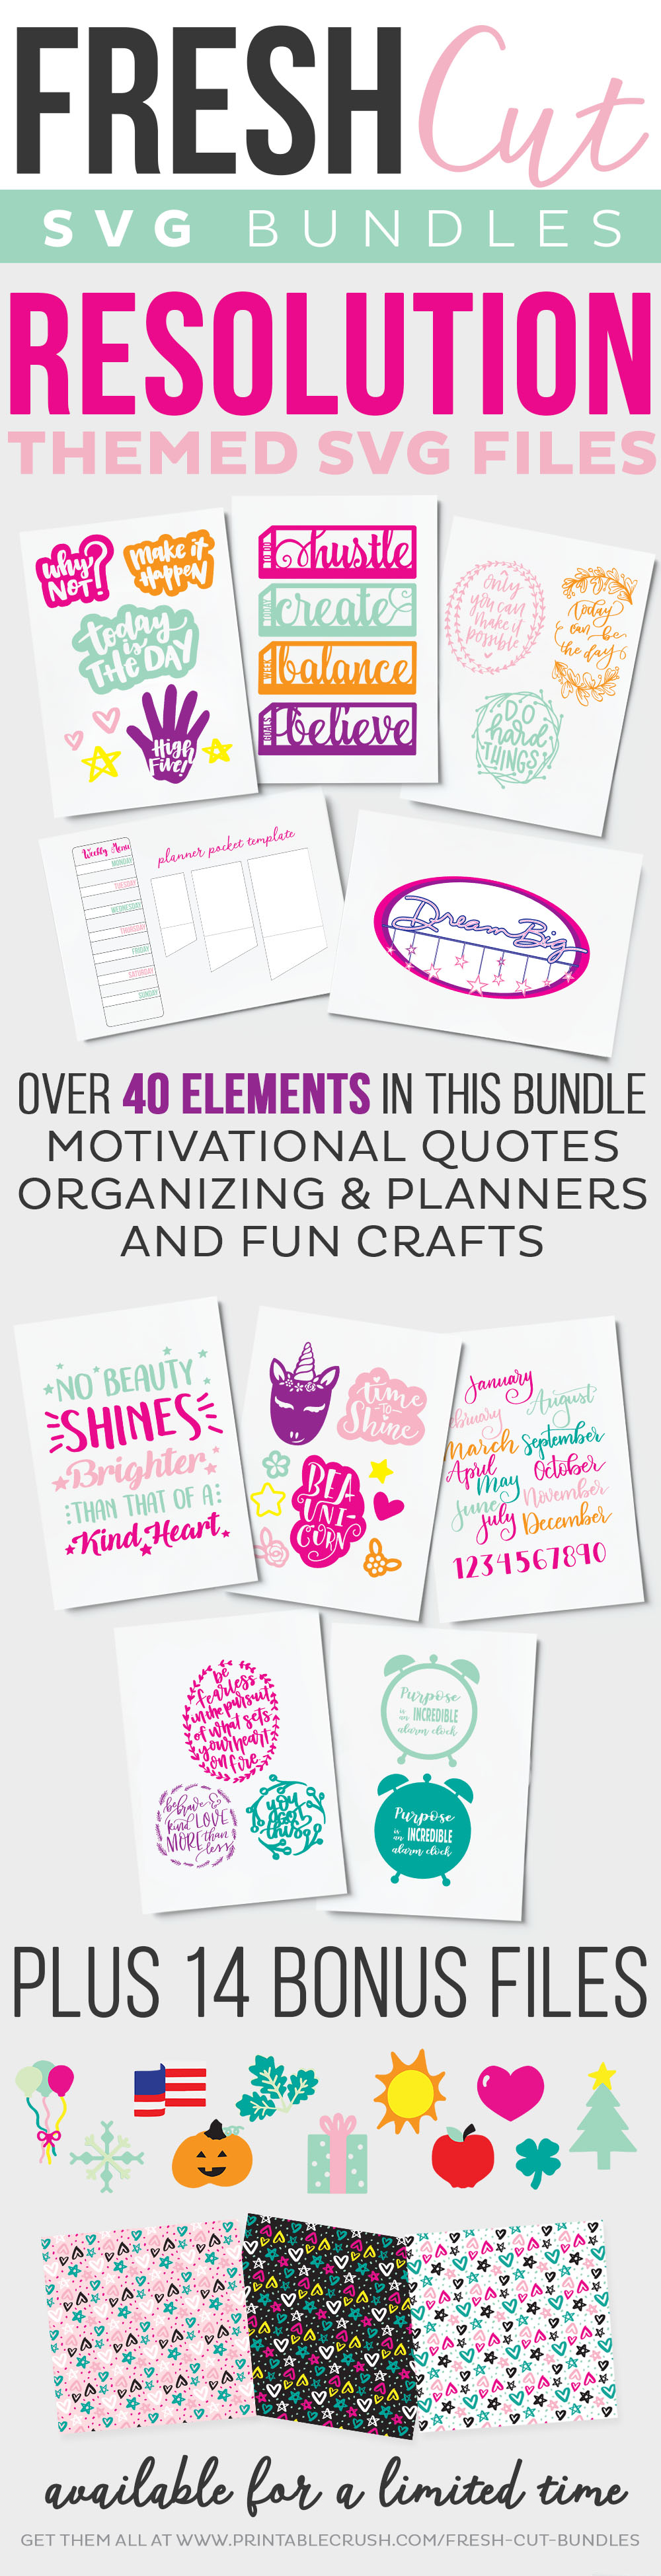 Resolution Themed SVG Files - includes over 40 elements and 14 bonus files for planning, crafts, organizing, and more!